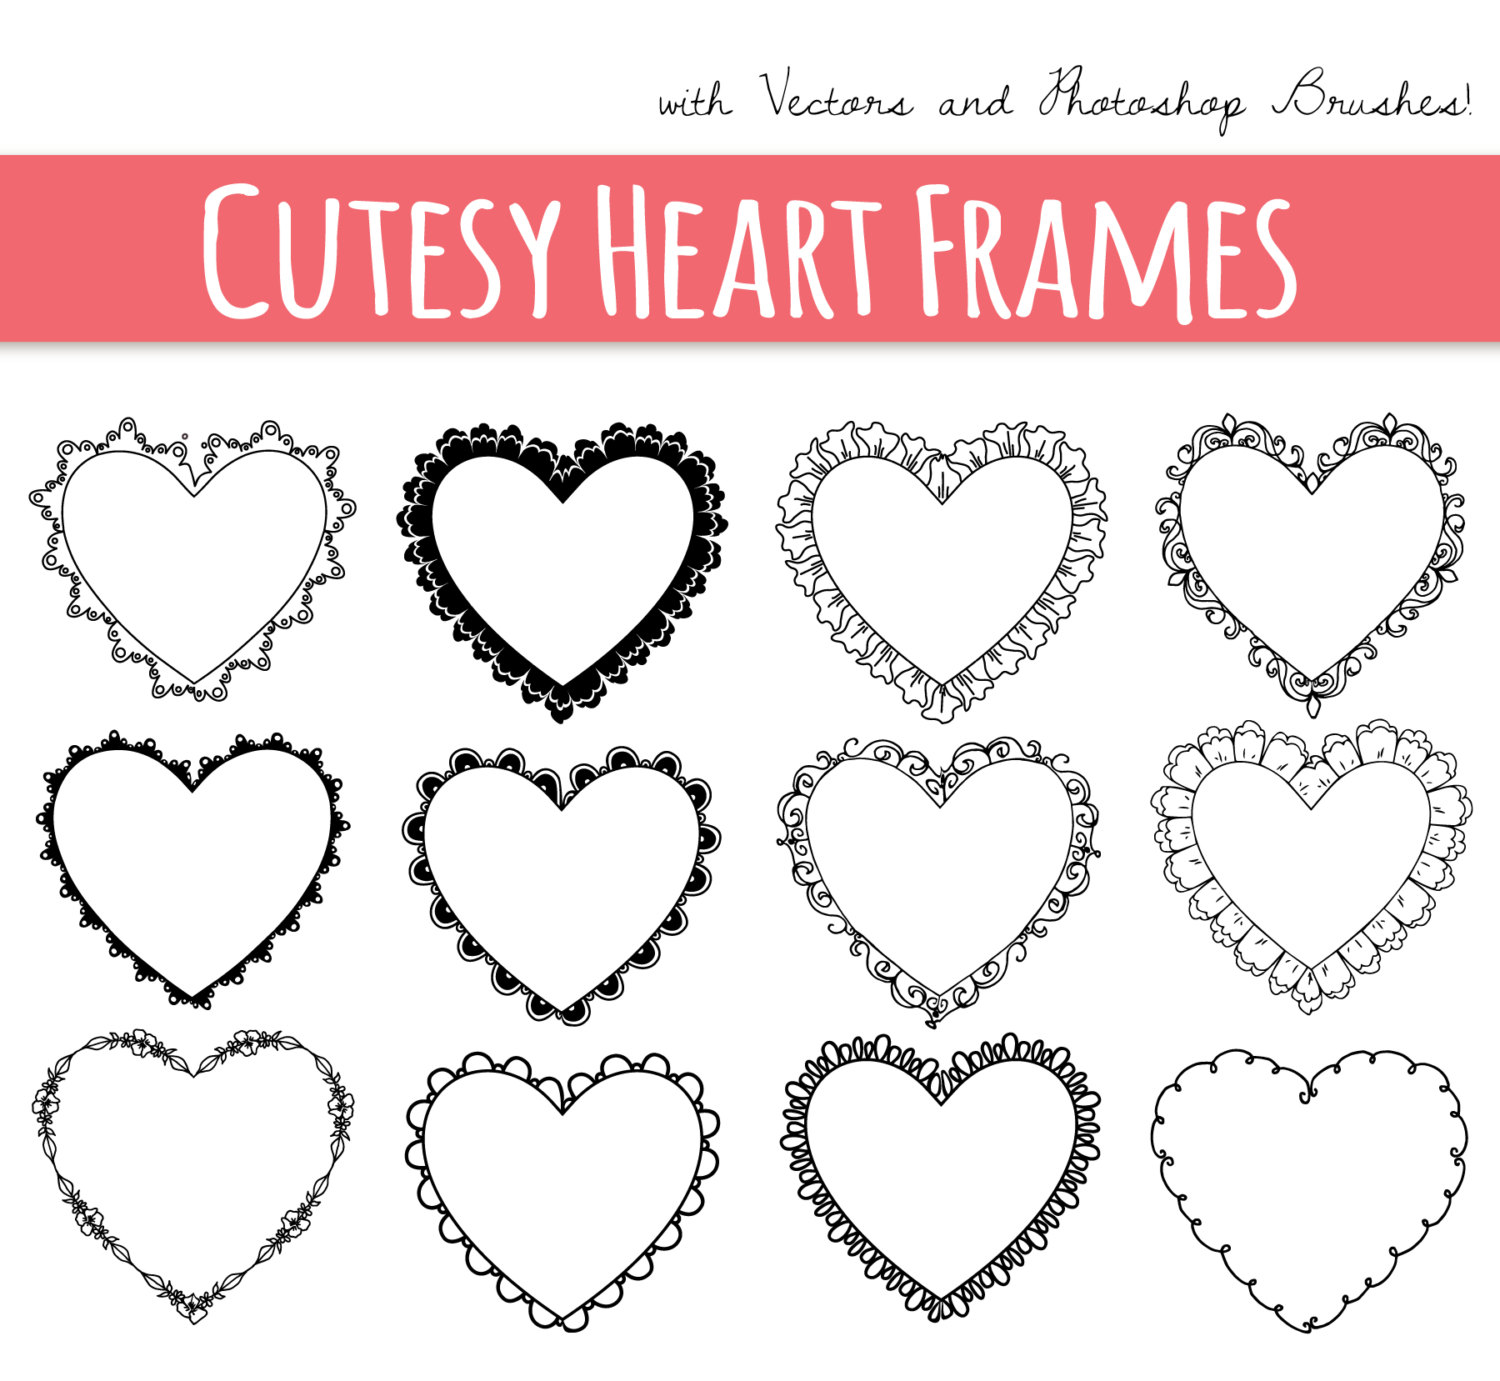 Decoration clipart heart outline Border Frame digital // Digital